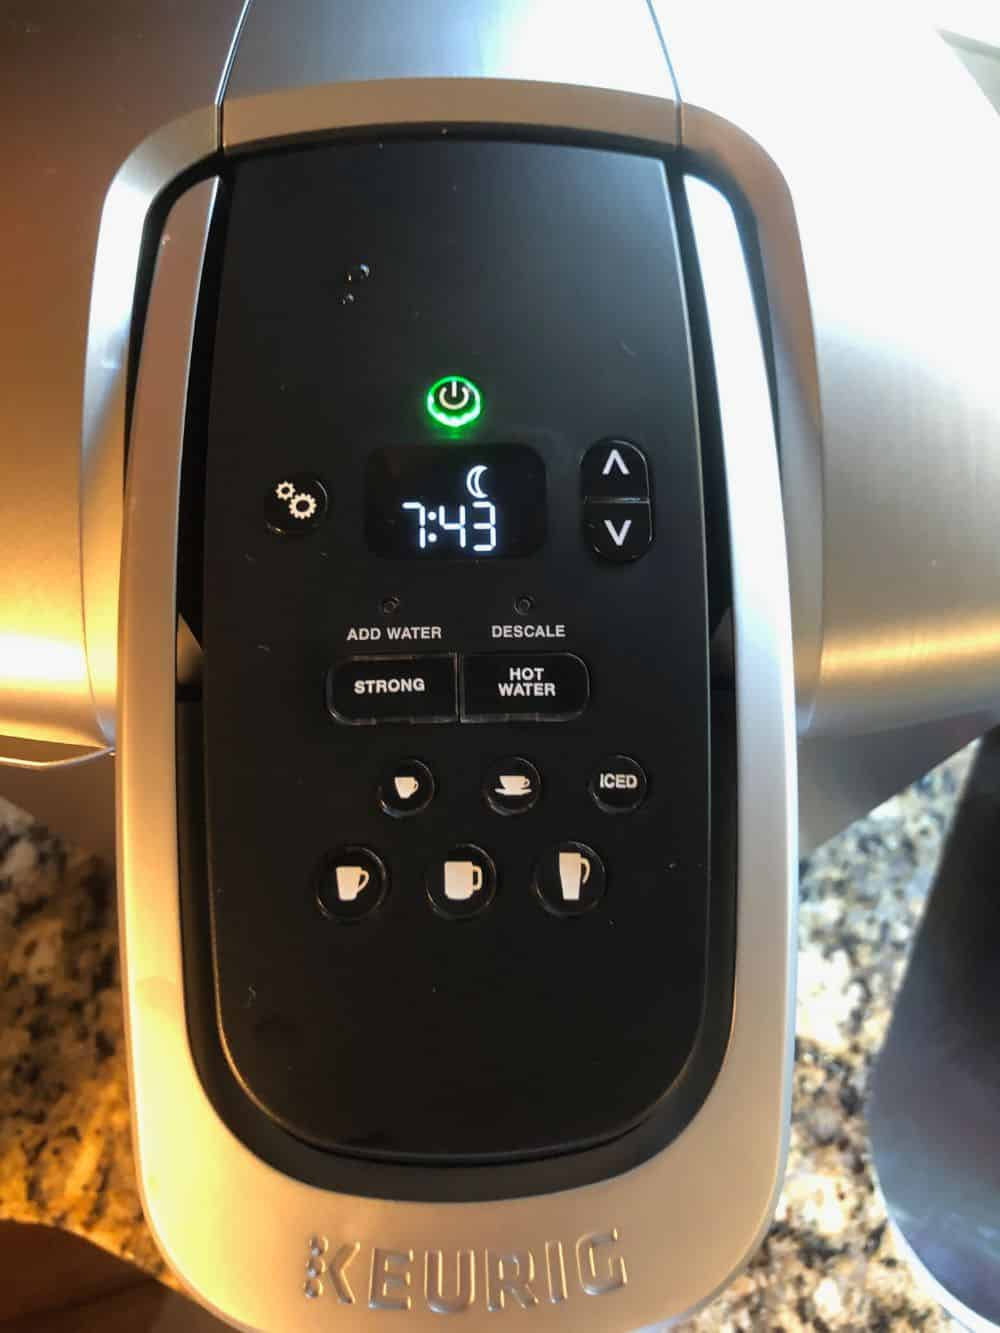 Screen and buttons on Keurig K-Elite Coffee Maker